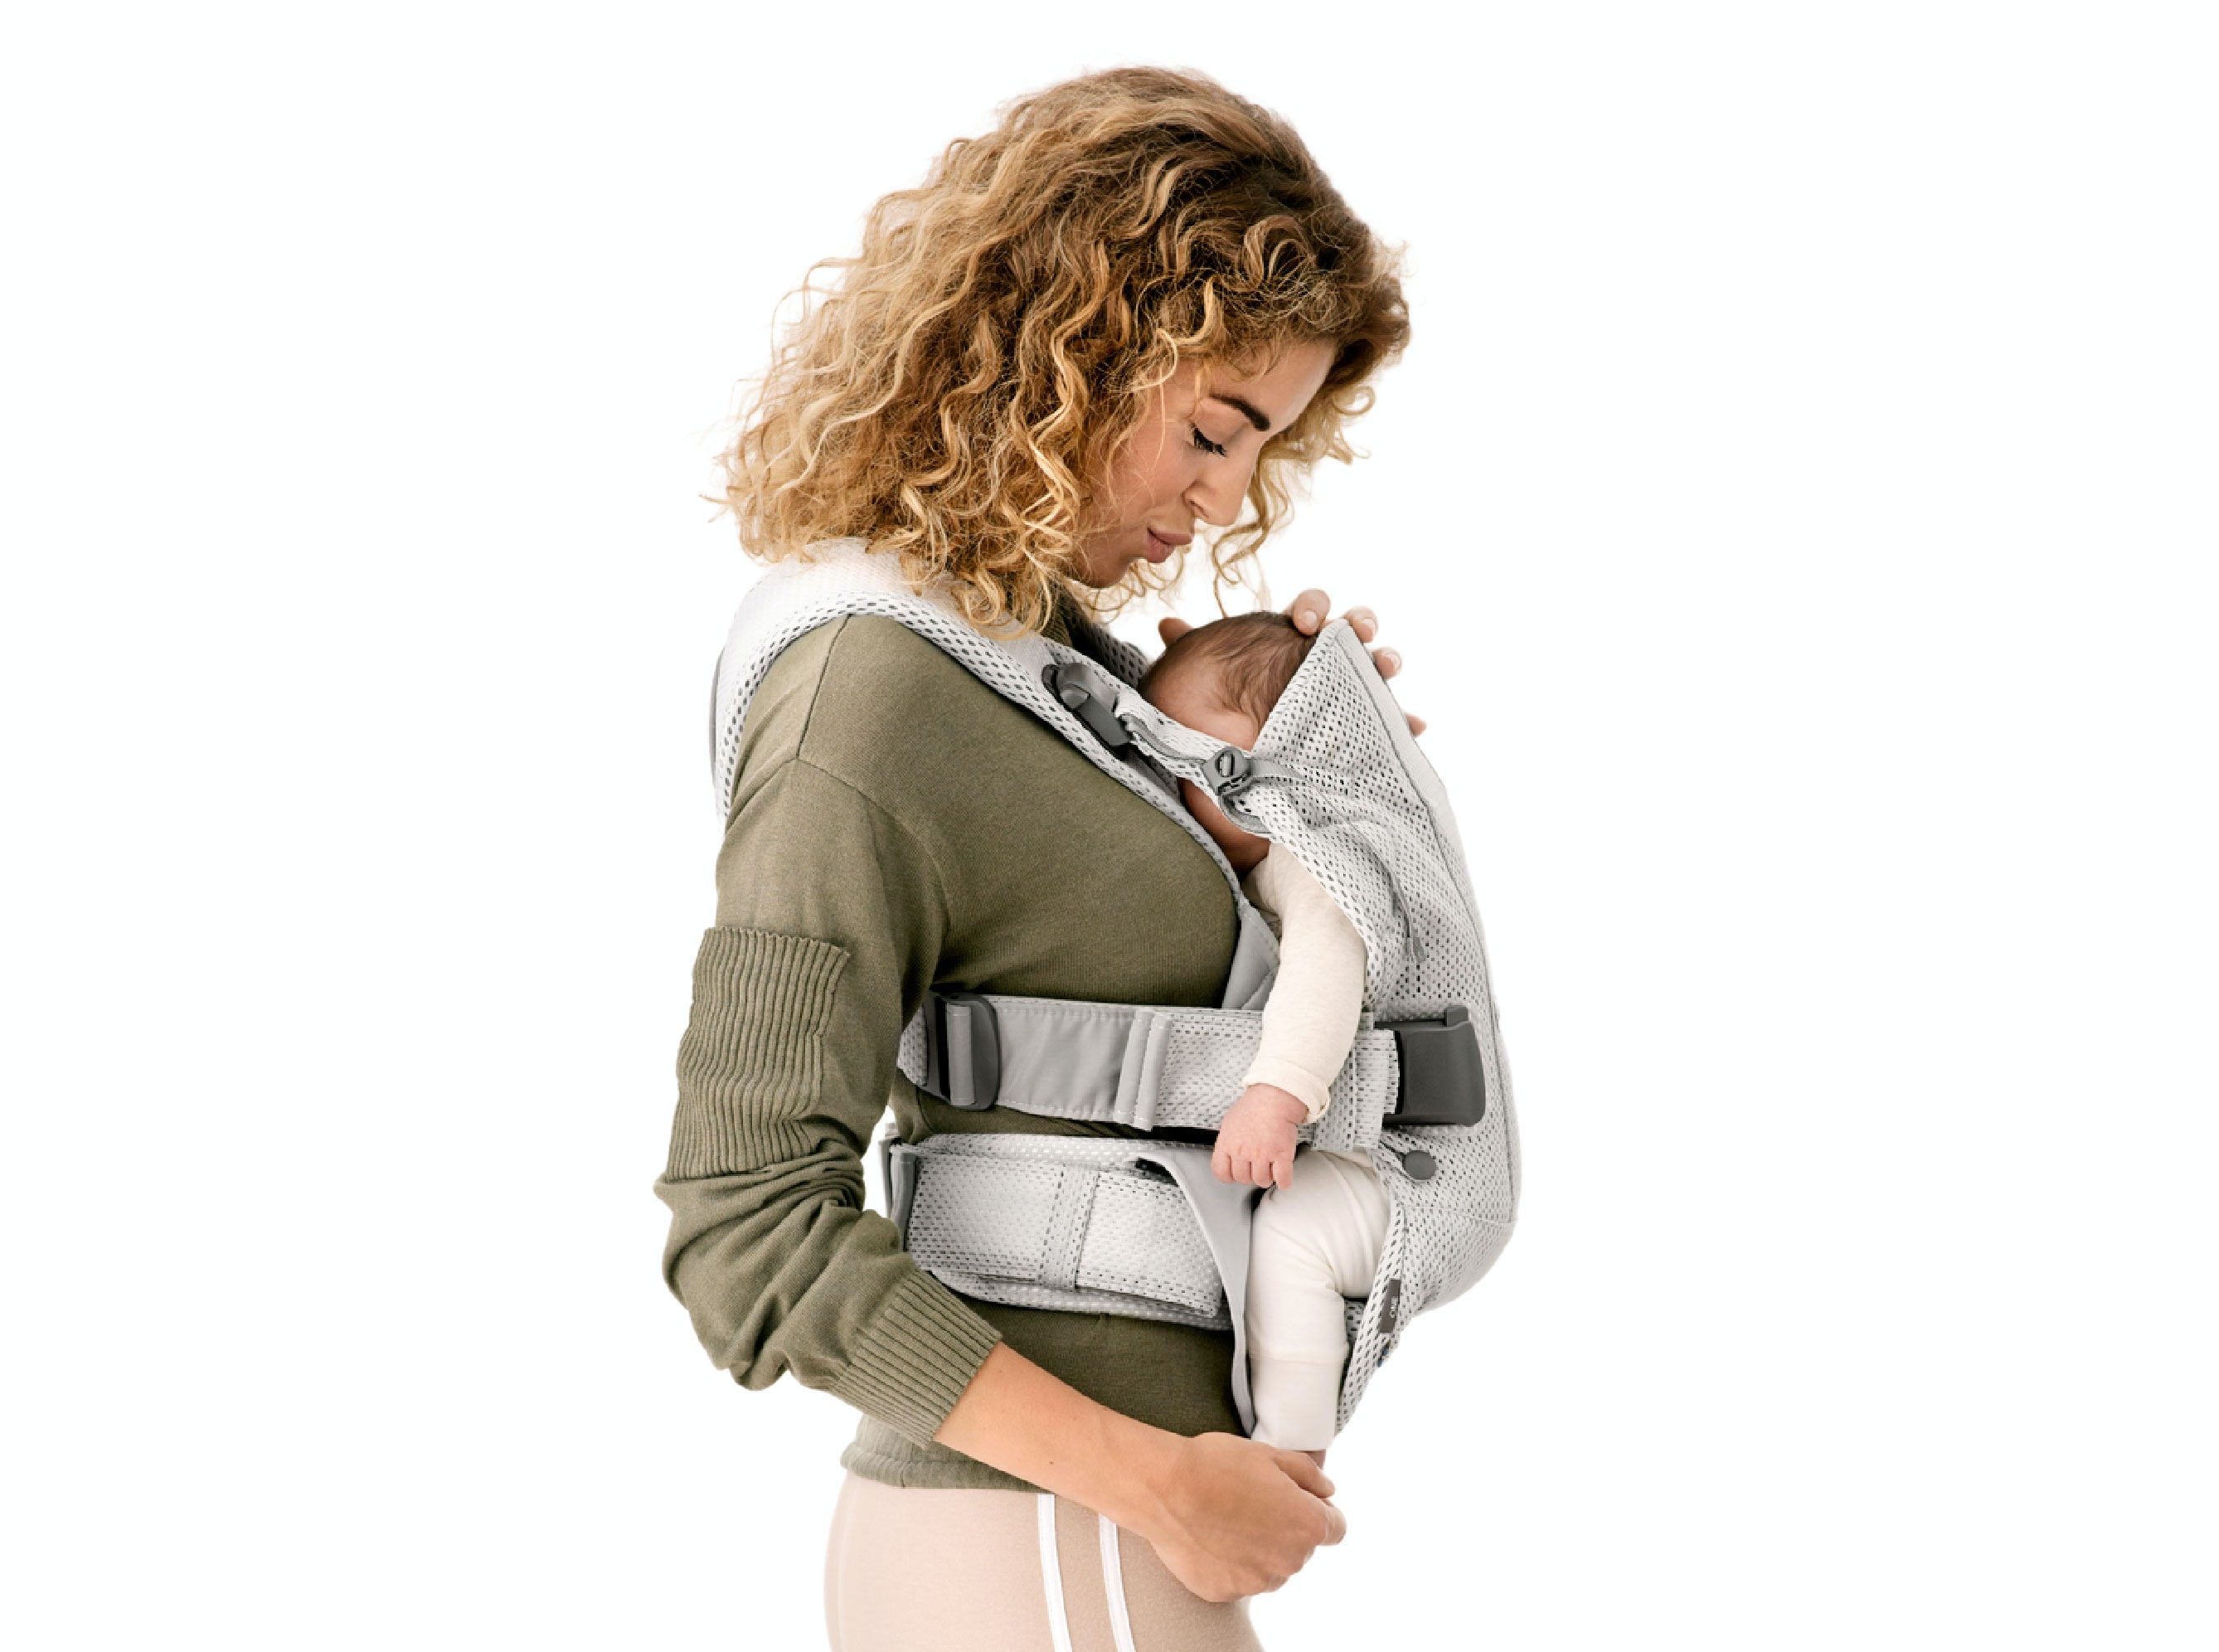 Porte-bébé One Air physiologique en mesh